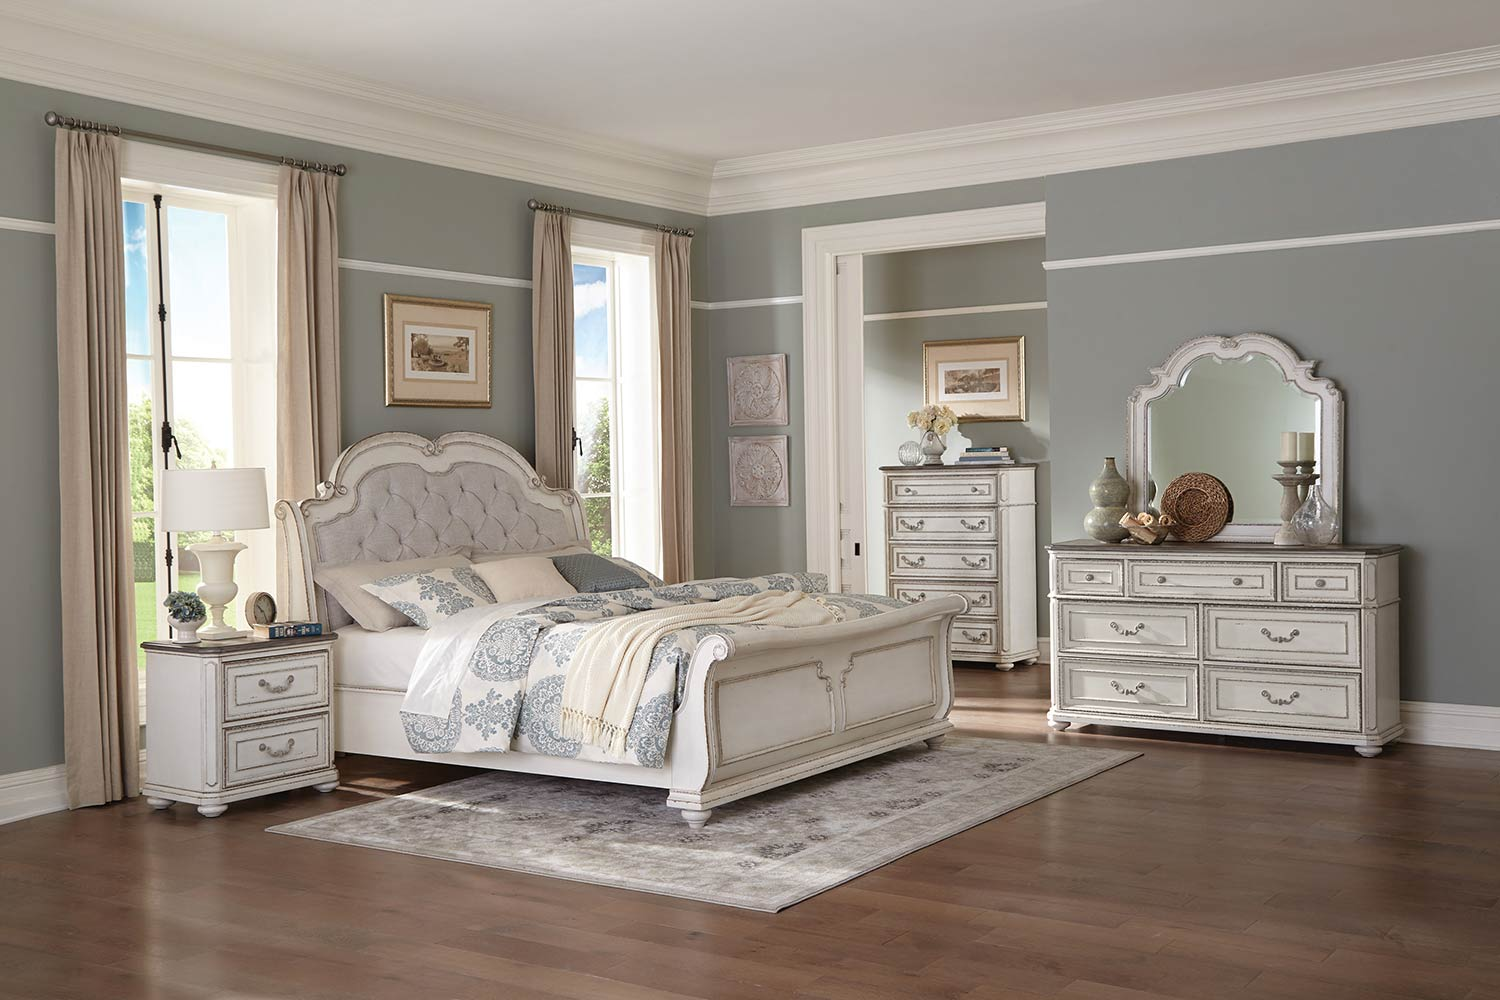 Homelegance Willowick Bedroom Set